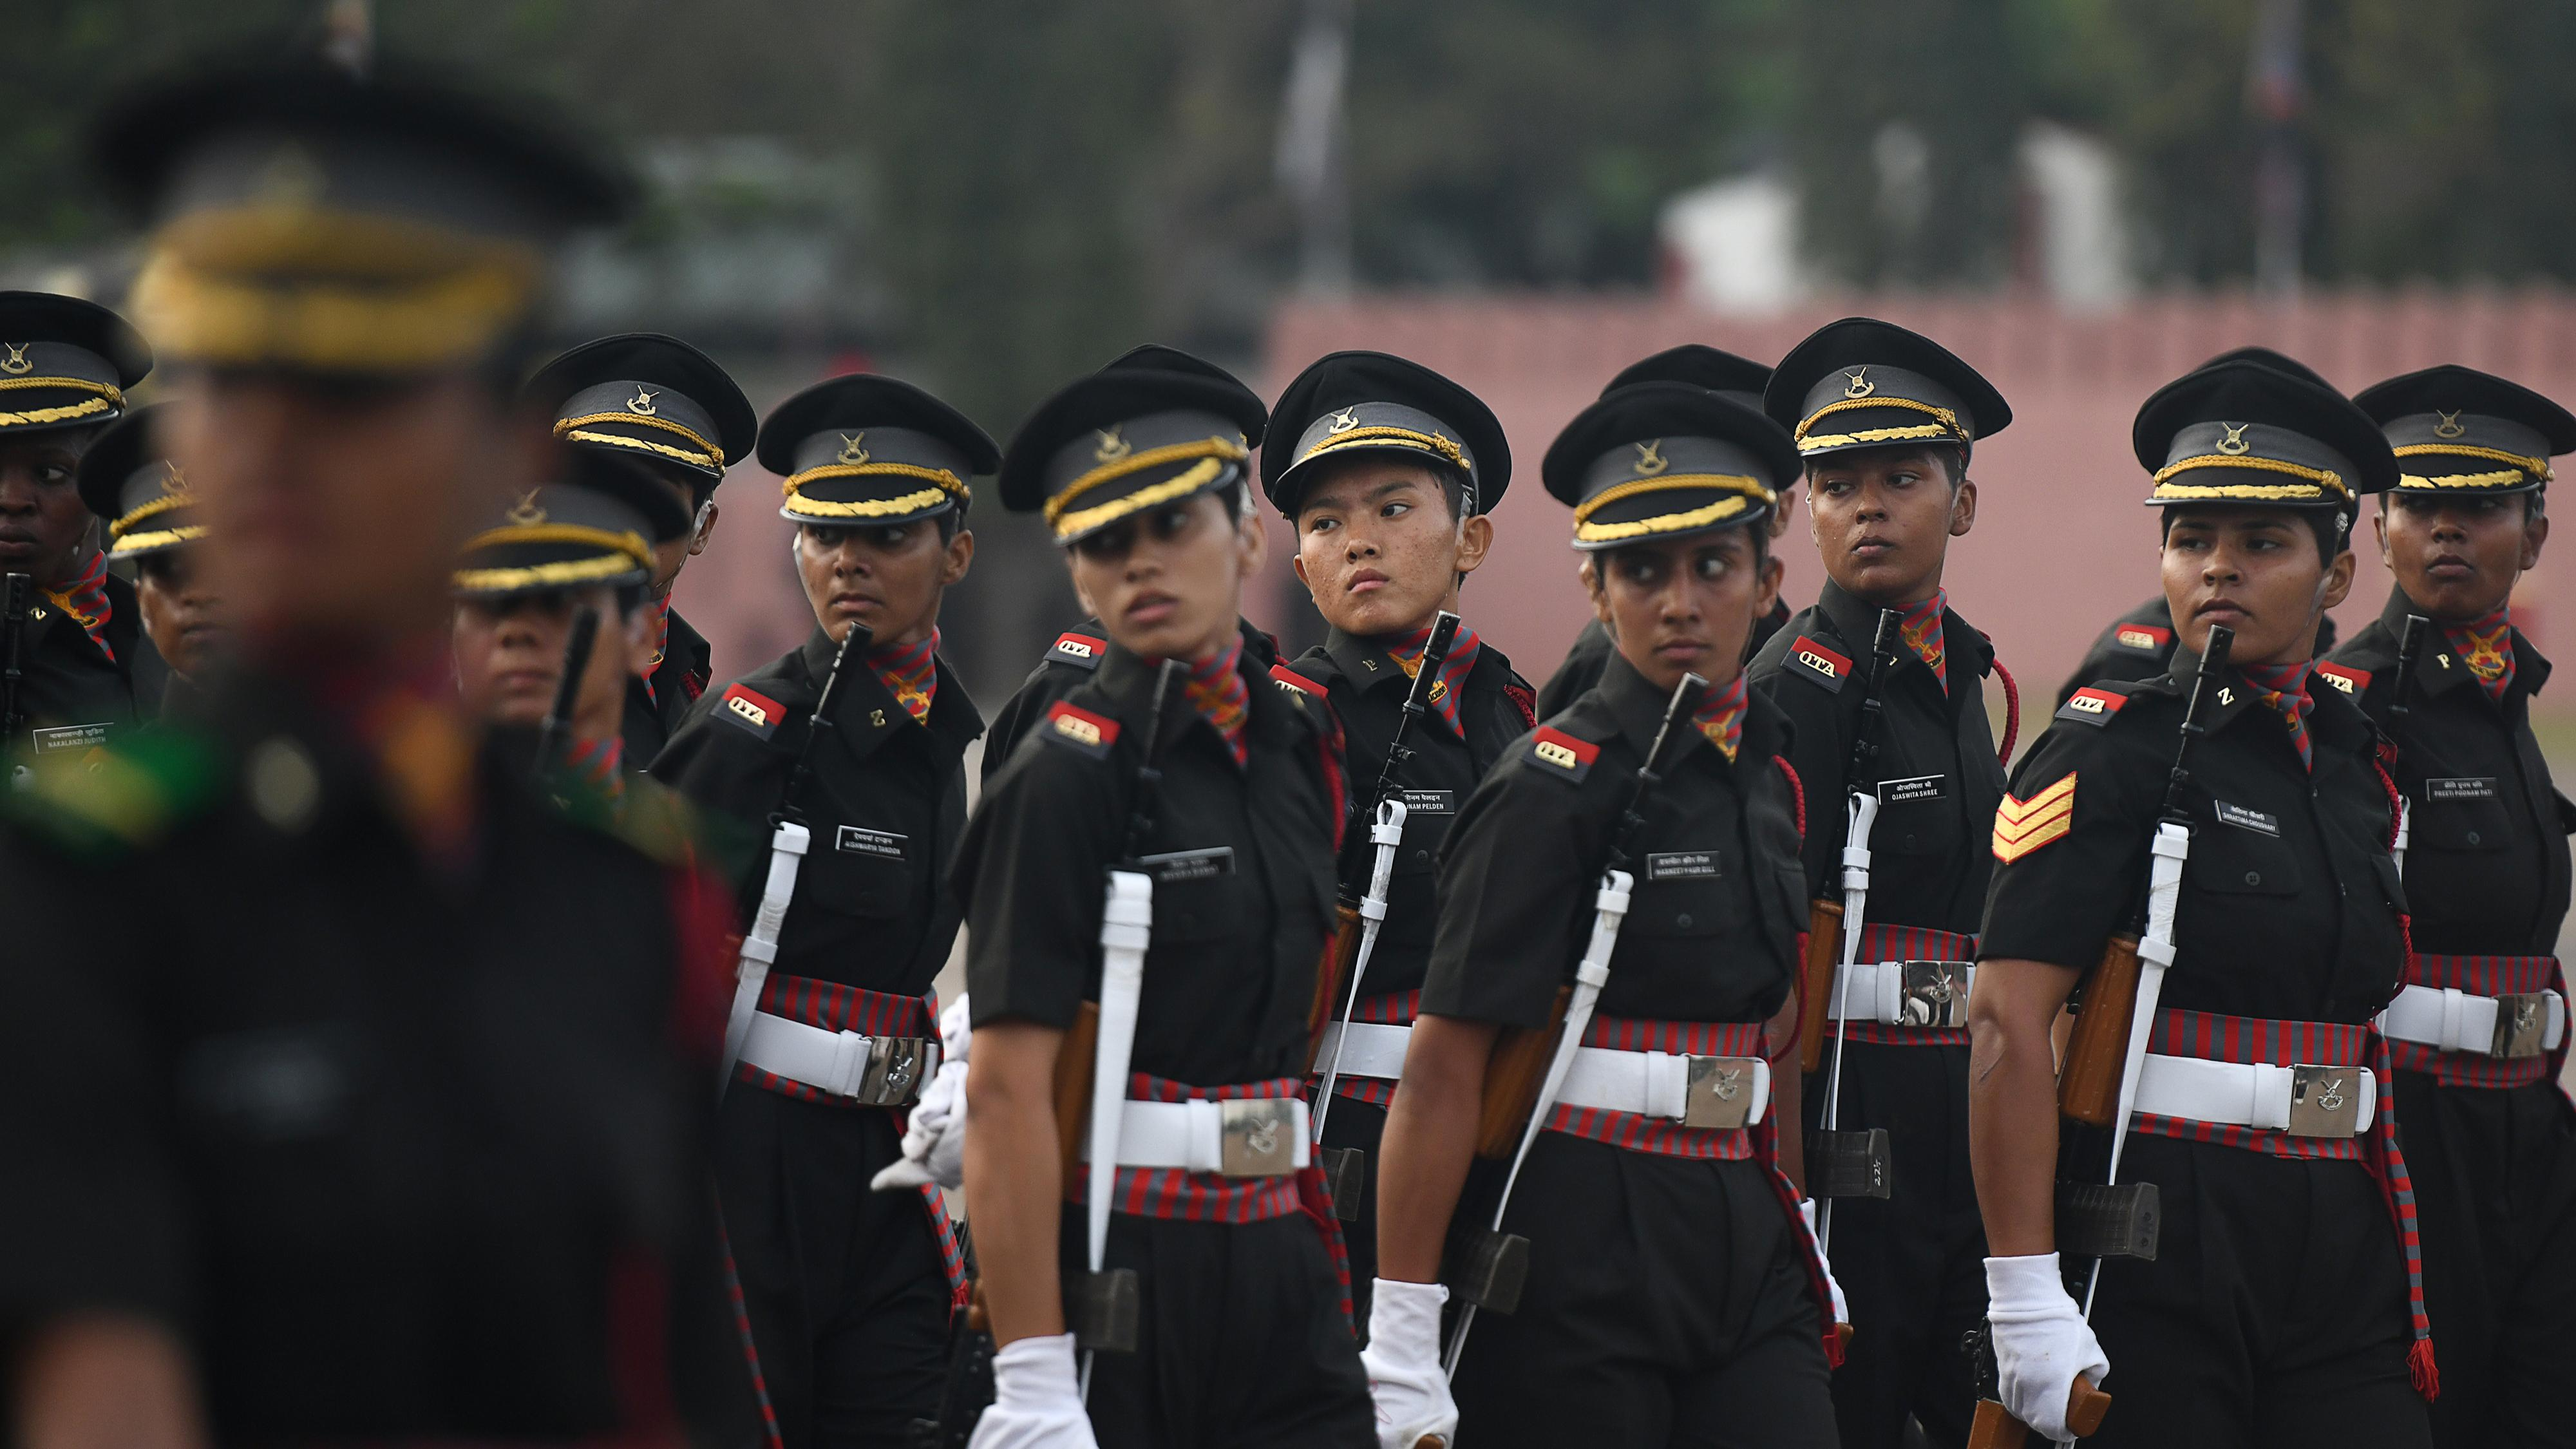 Indian Army conducts 4-day recruitment drive for women in Lucknow